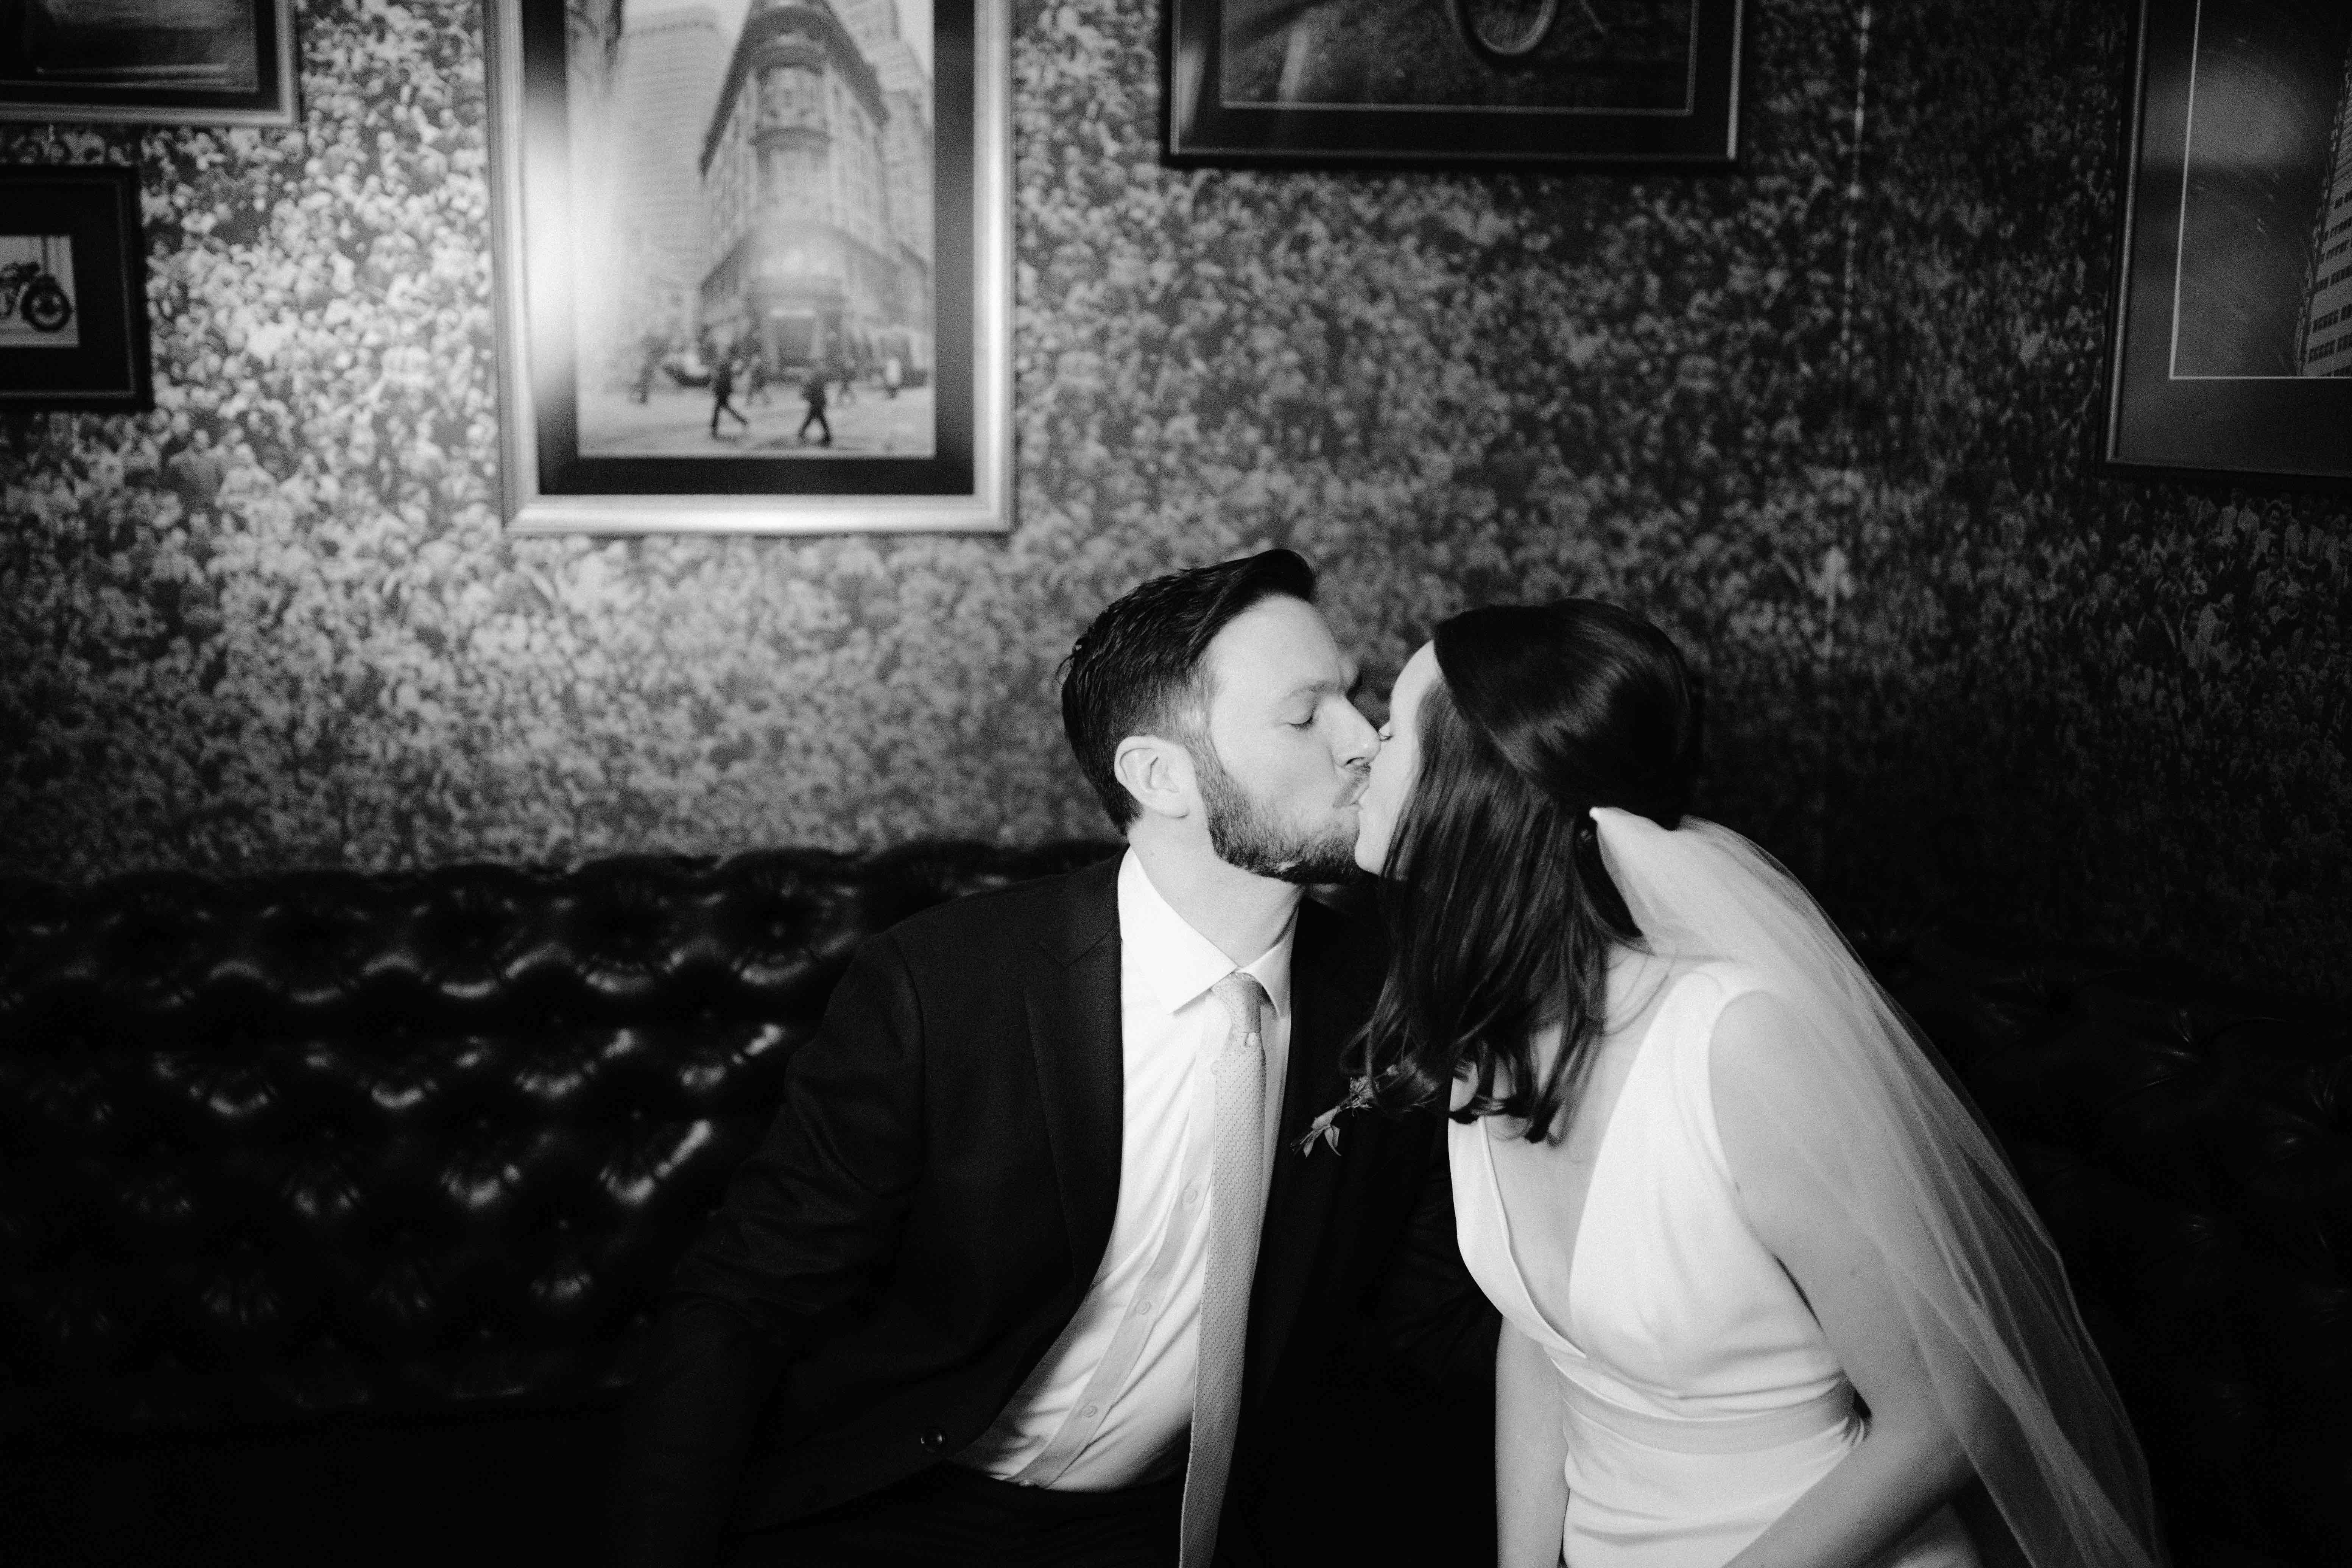 Best-501-Union-Wedding-Photography-Brooklyn-New-York39